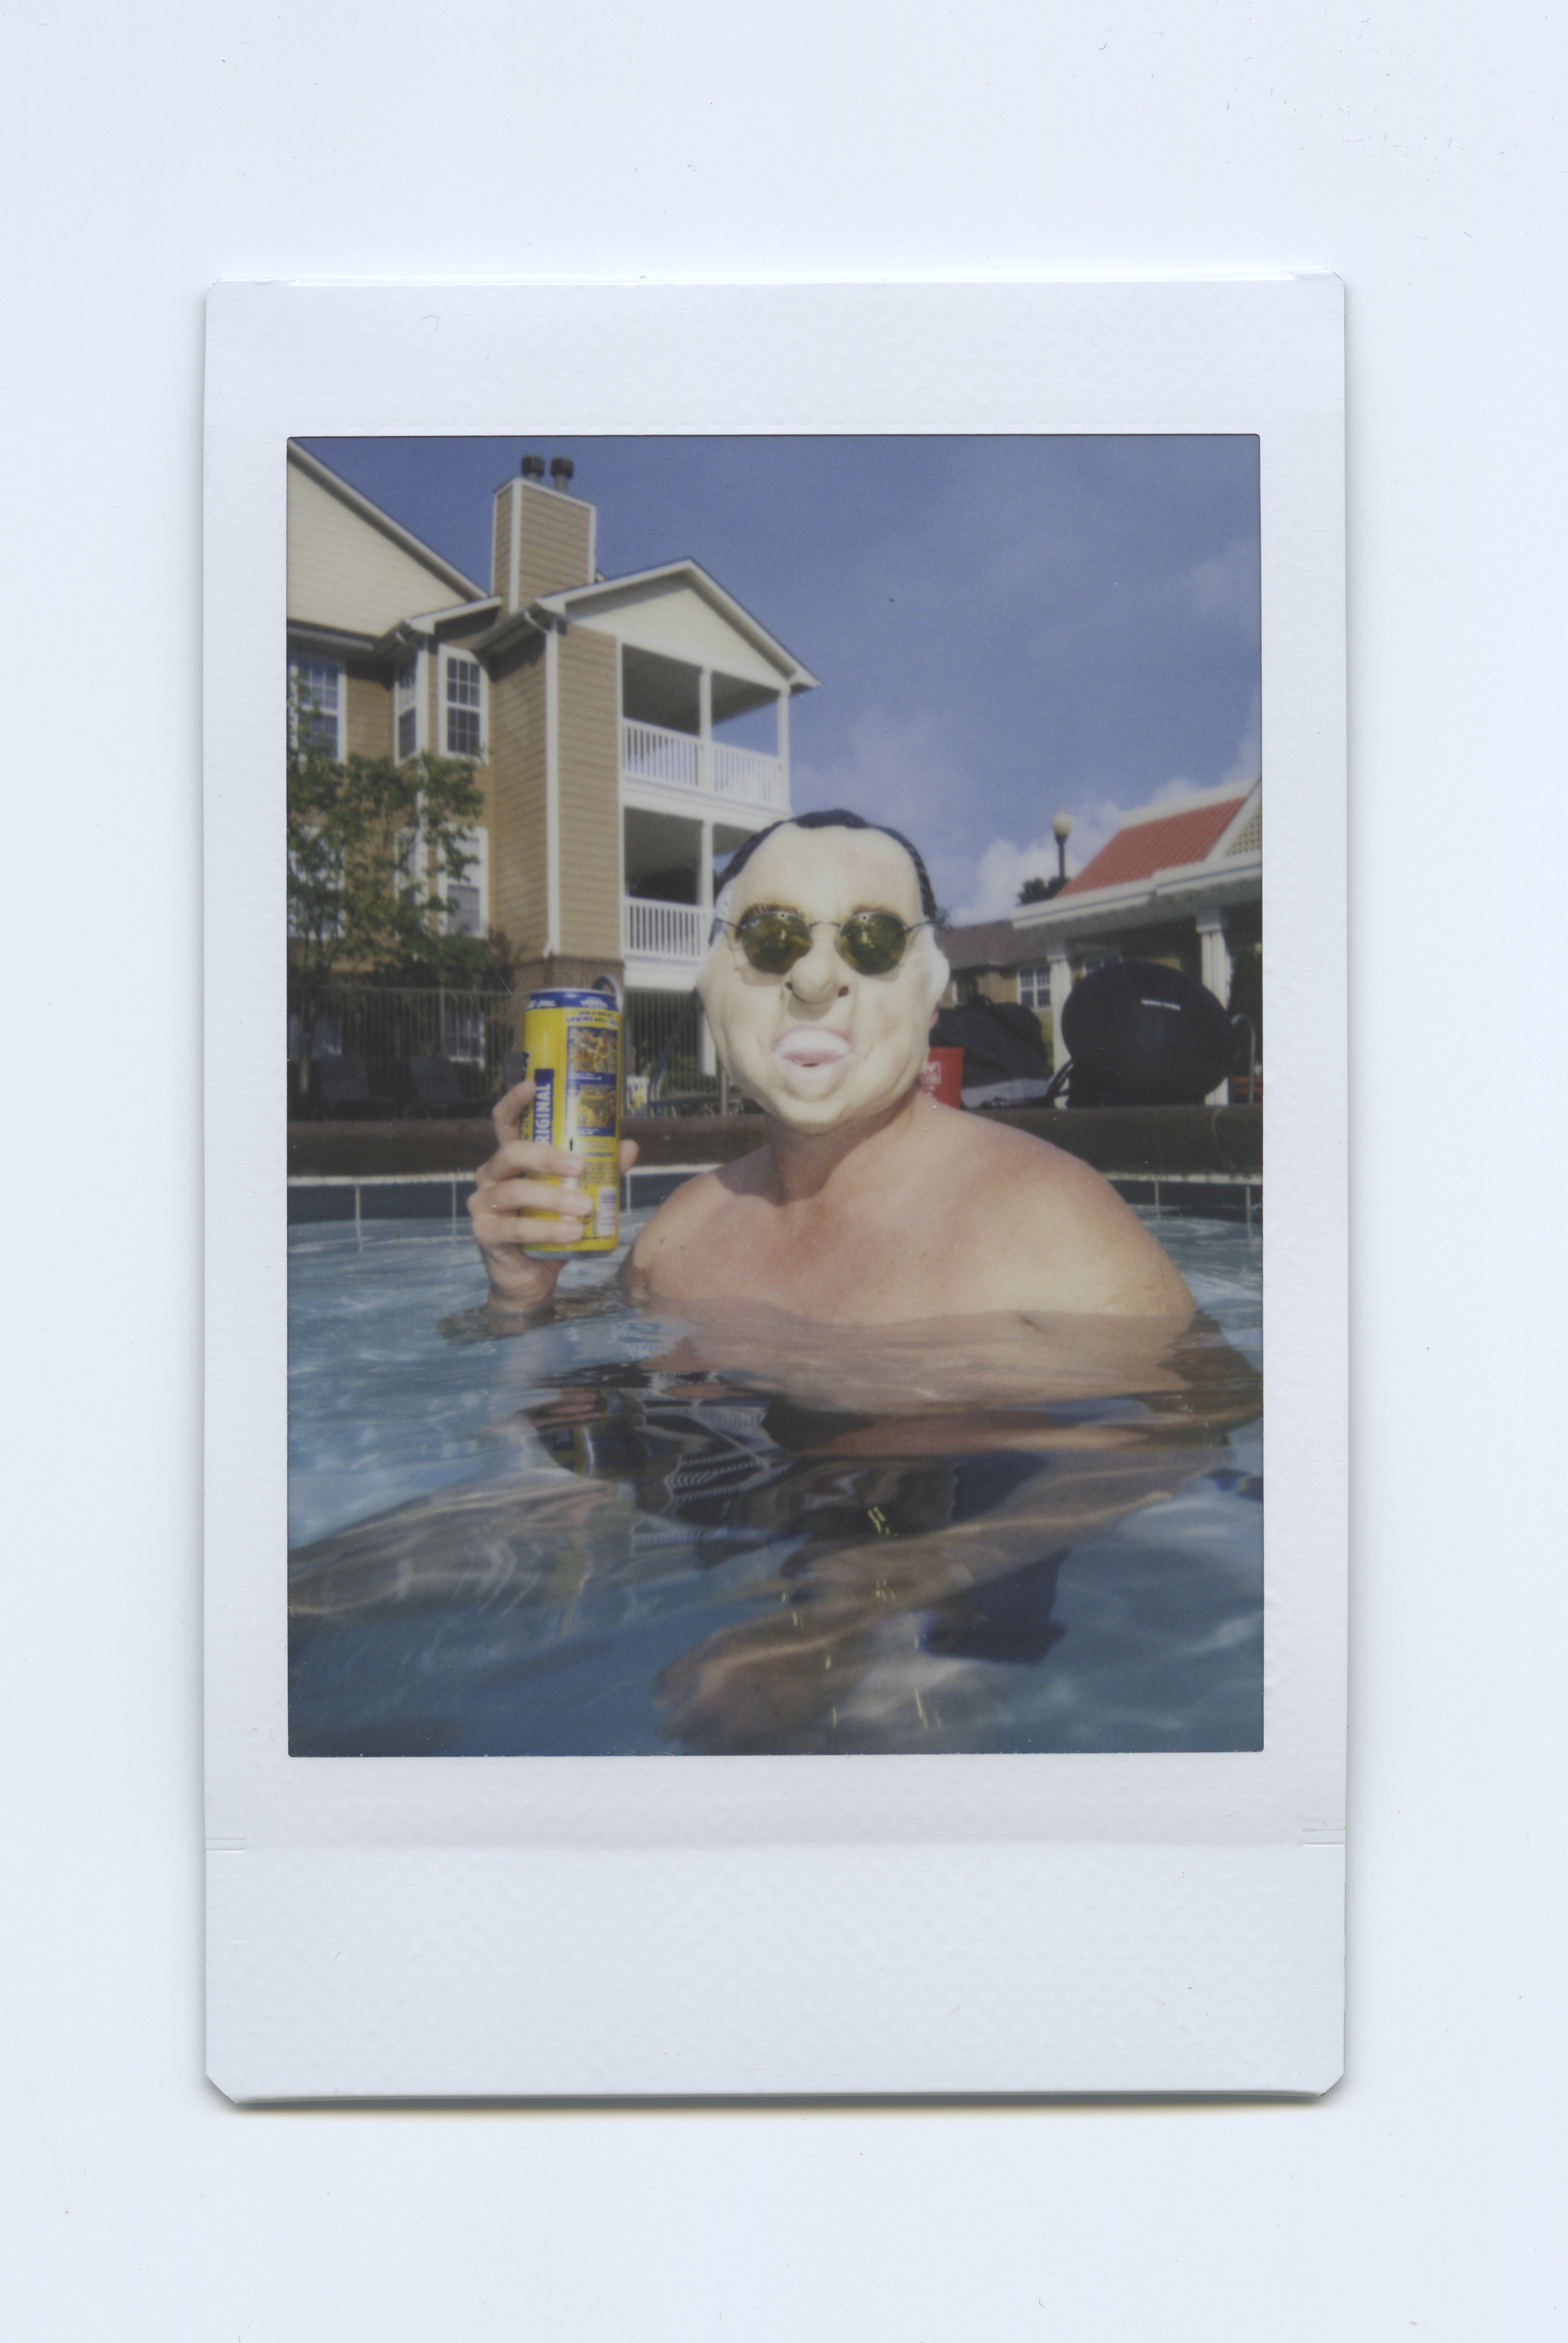 Tricky Dick at the pool. - Shot on Fujifilm Neo90 Camera with Fuji Instant Film - Indianapolis, IN